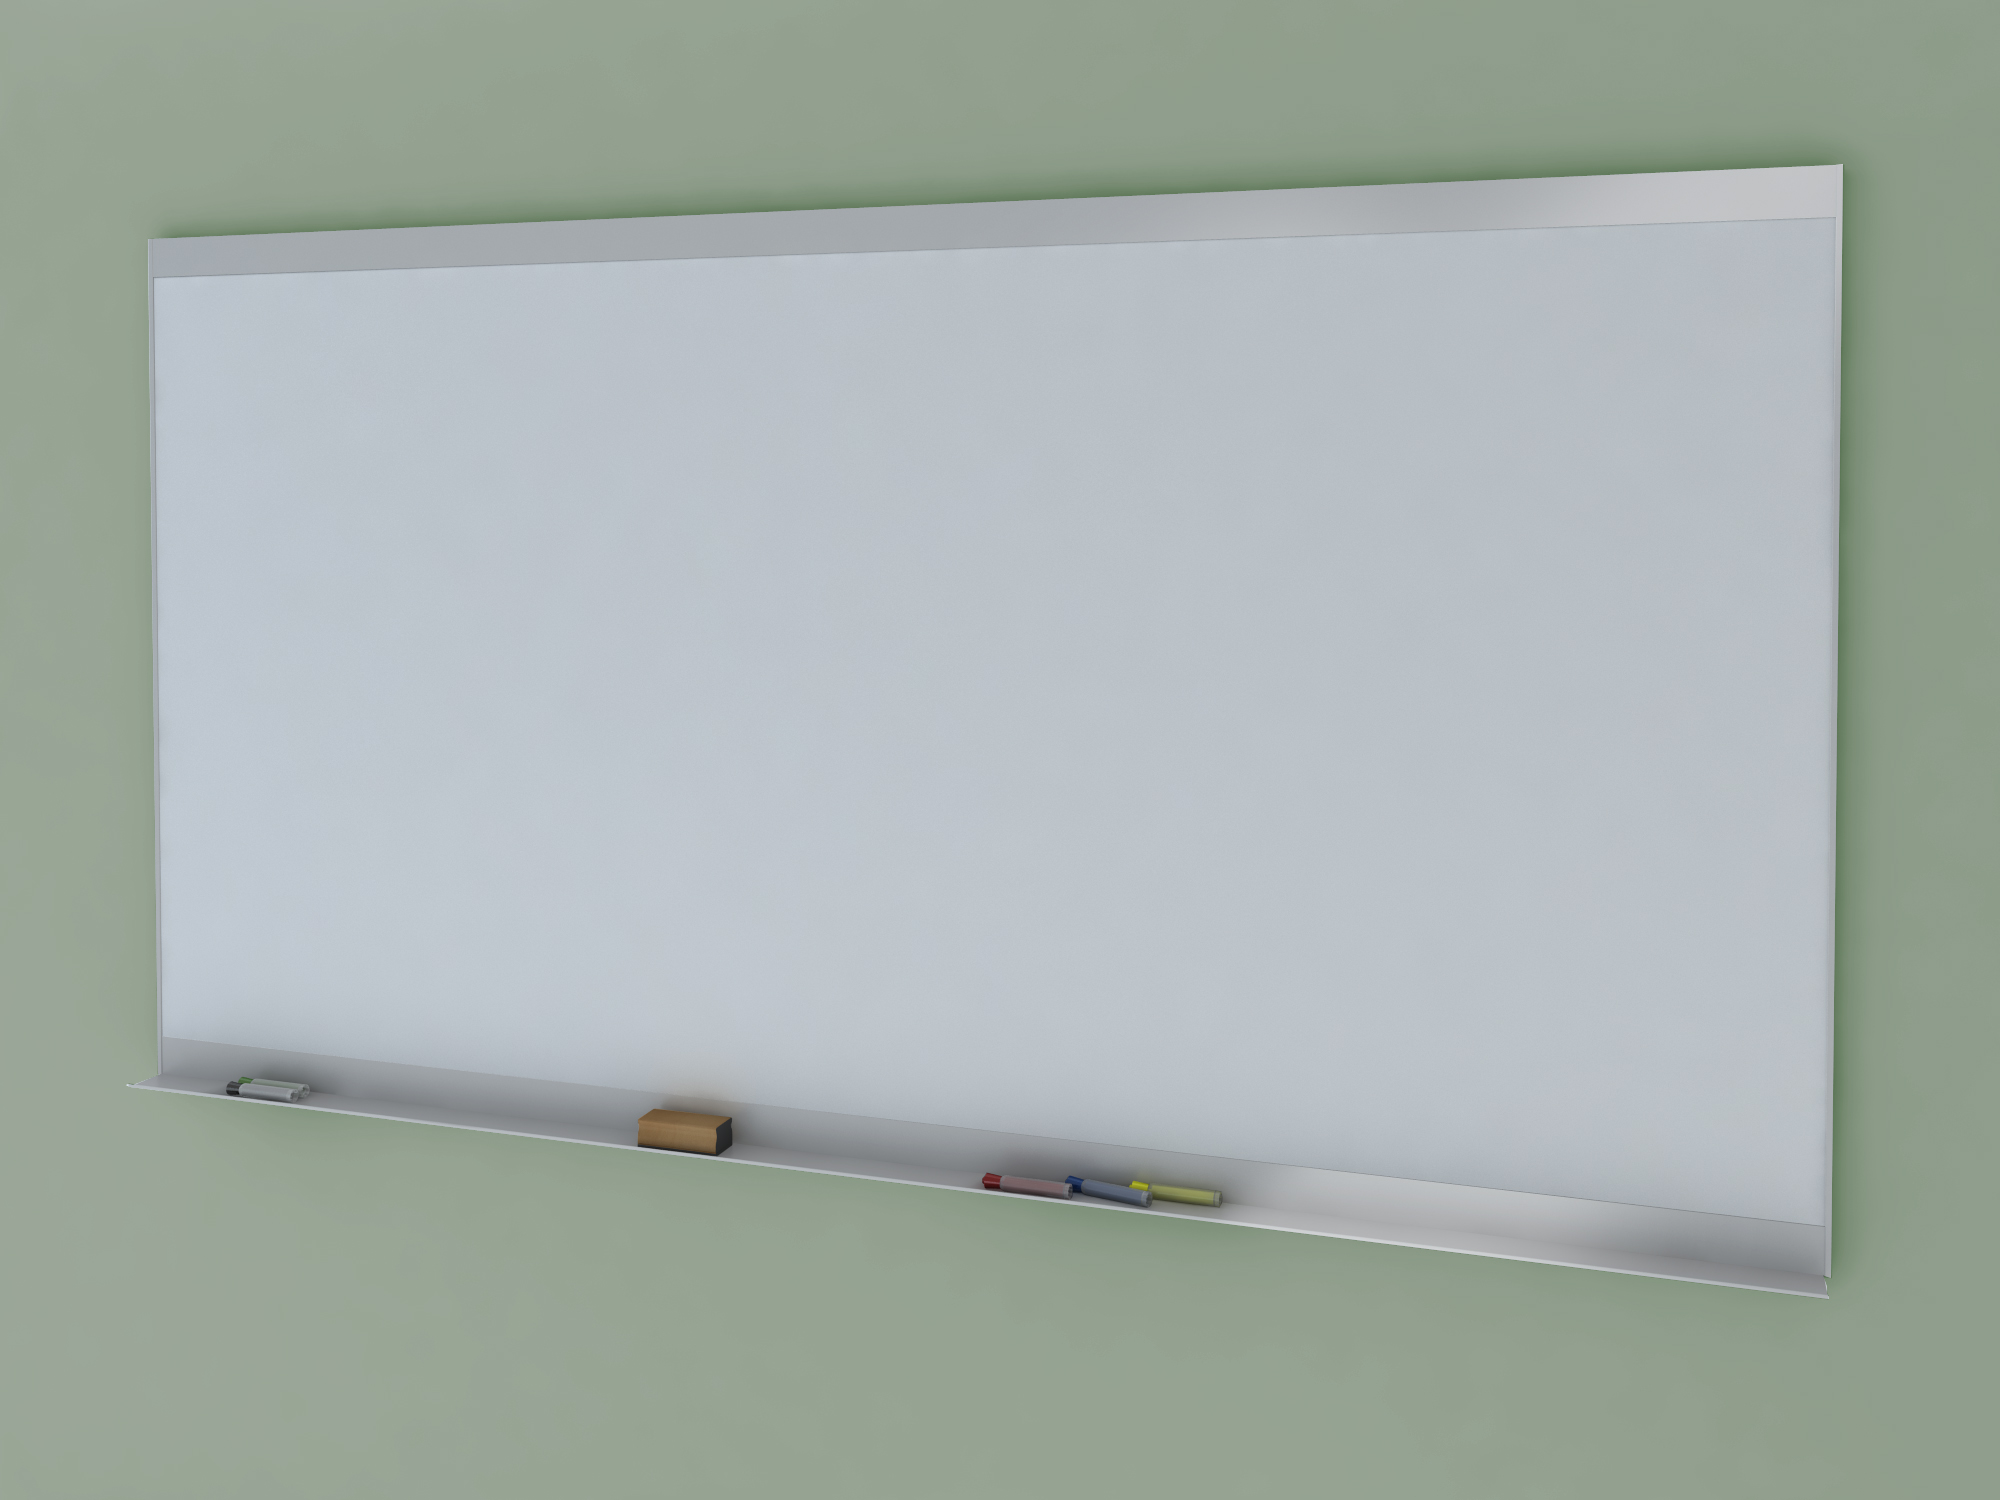 EVOLVE - Dry Erase Markerboard w/ Wide Face Top & Bottom Trim